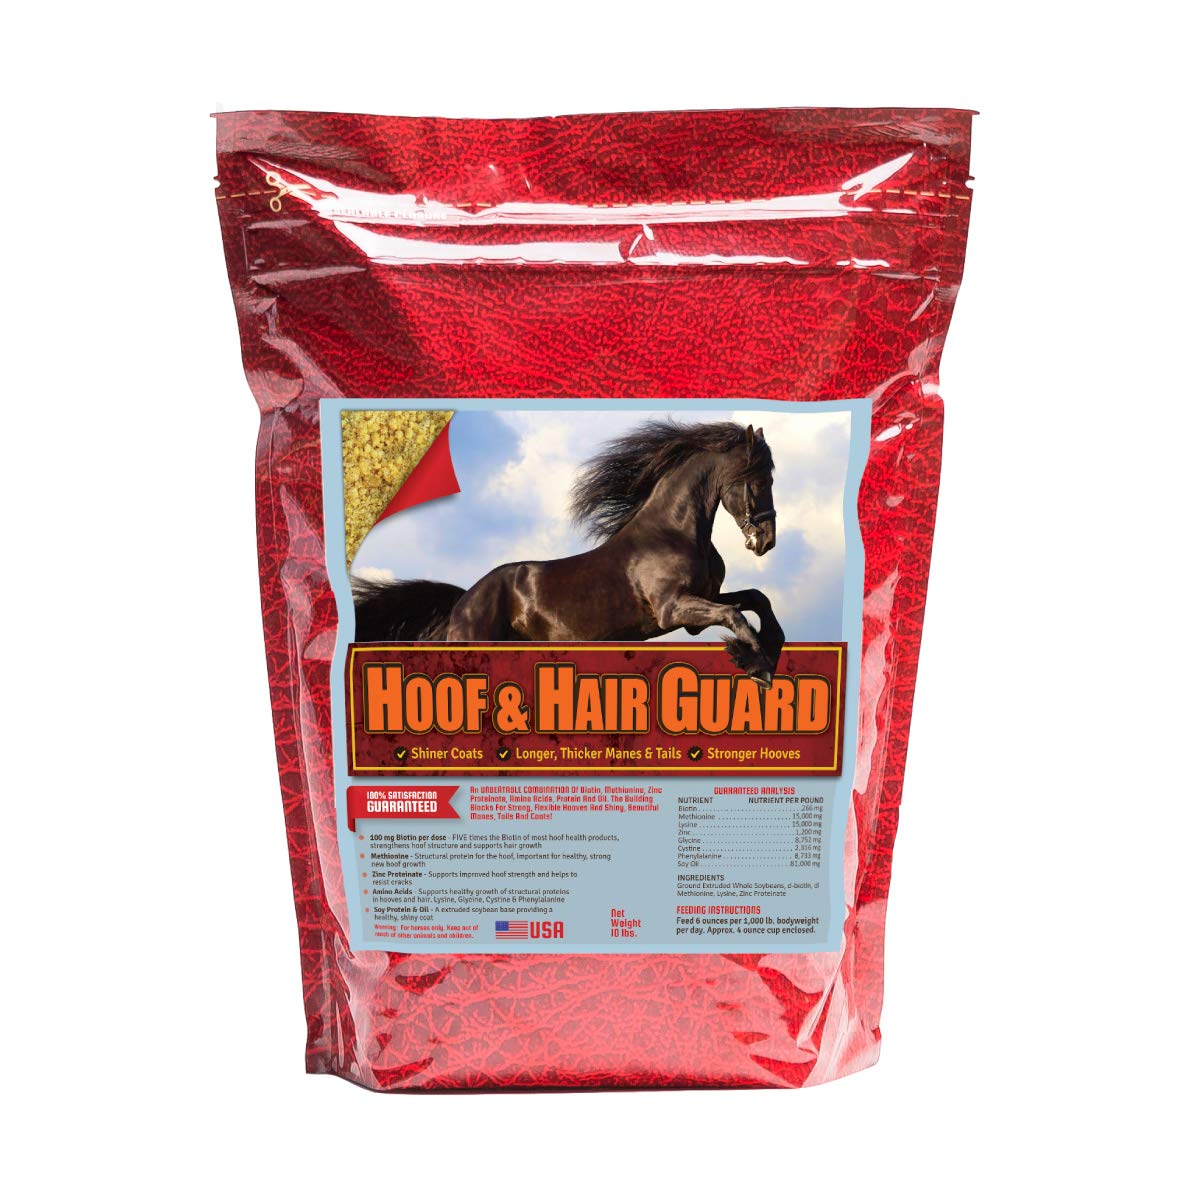 Horse Guard HOOF & HAIR GUARD EQUINE HOOF SUPPLEMENT AND EQUINE COAT SUPPLEMENT WITH AMINO ACIDS, BIOTIN, METHIONINE & SOY OIL, 10 lb by Horse Guard (Image #1)